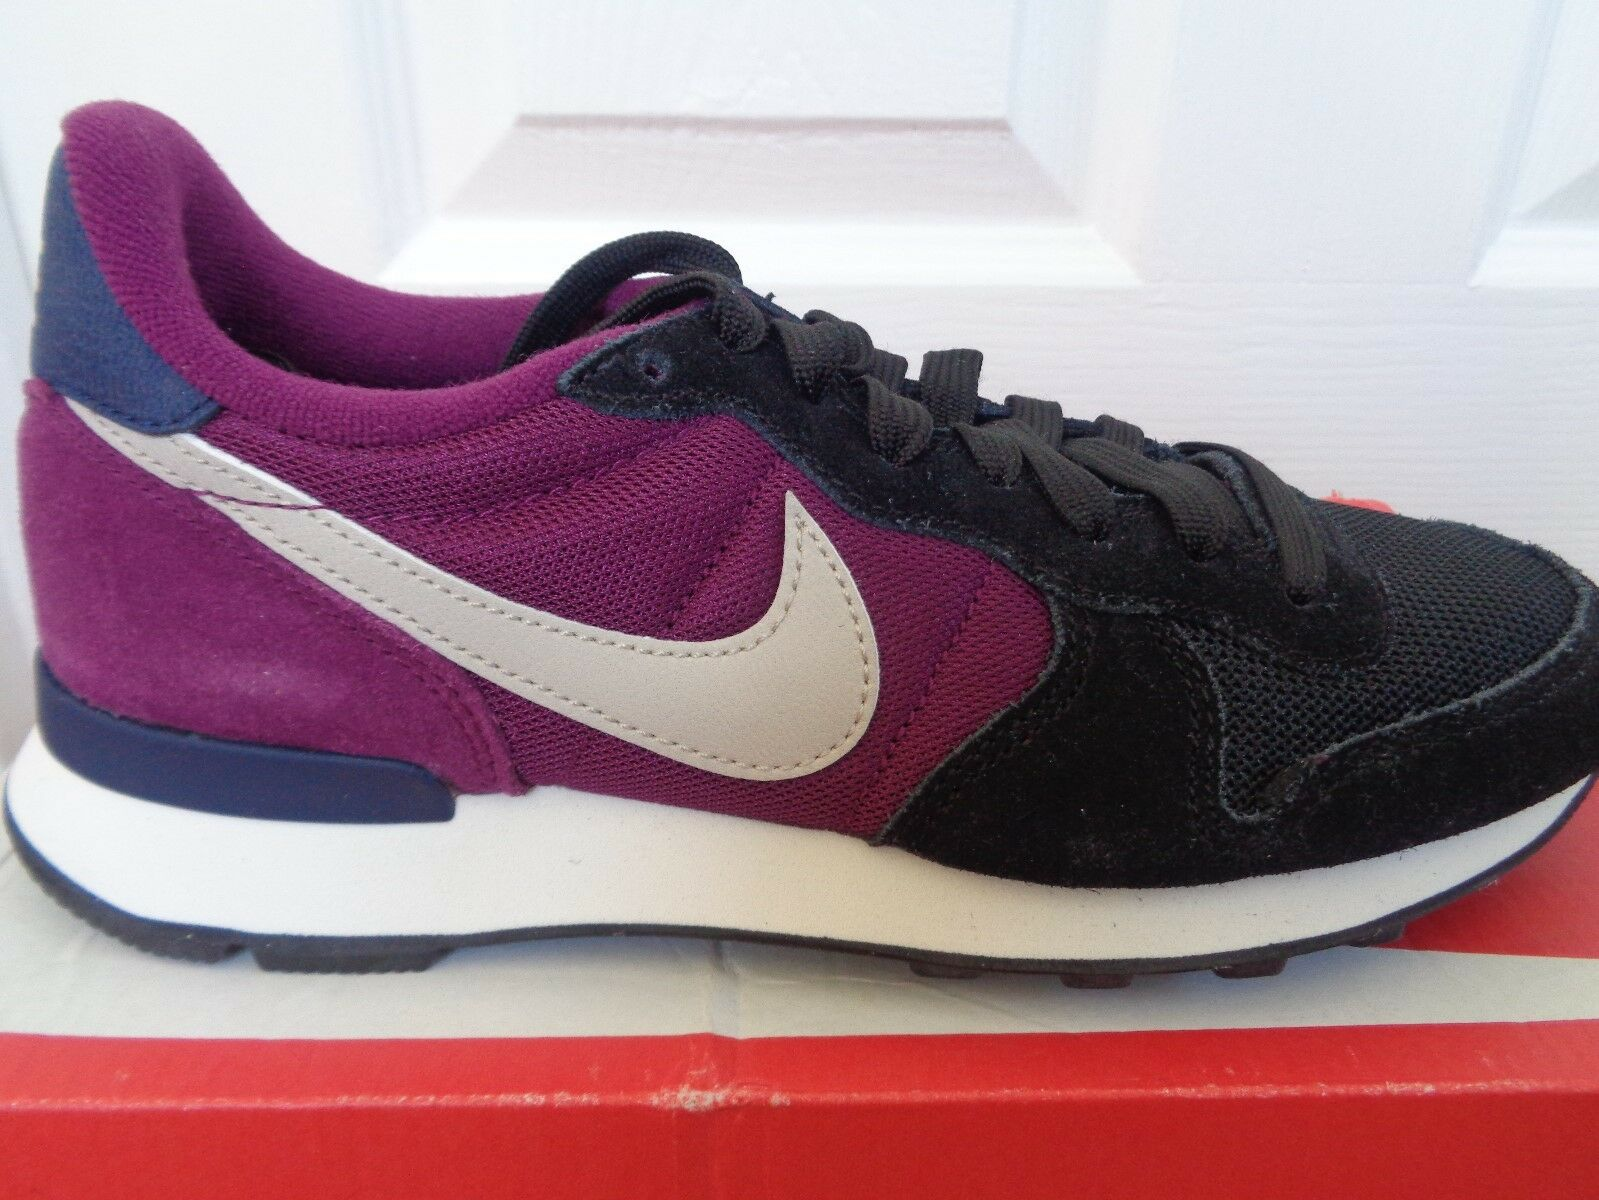 Nike Internationalist wmns trainers eu 629684 014 uk 4.5 eu trainers 37.5 us 7 NEW+BOX bb520d